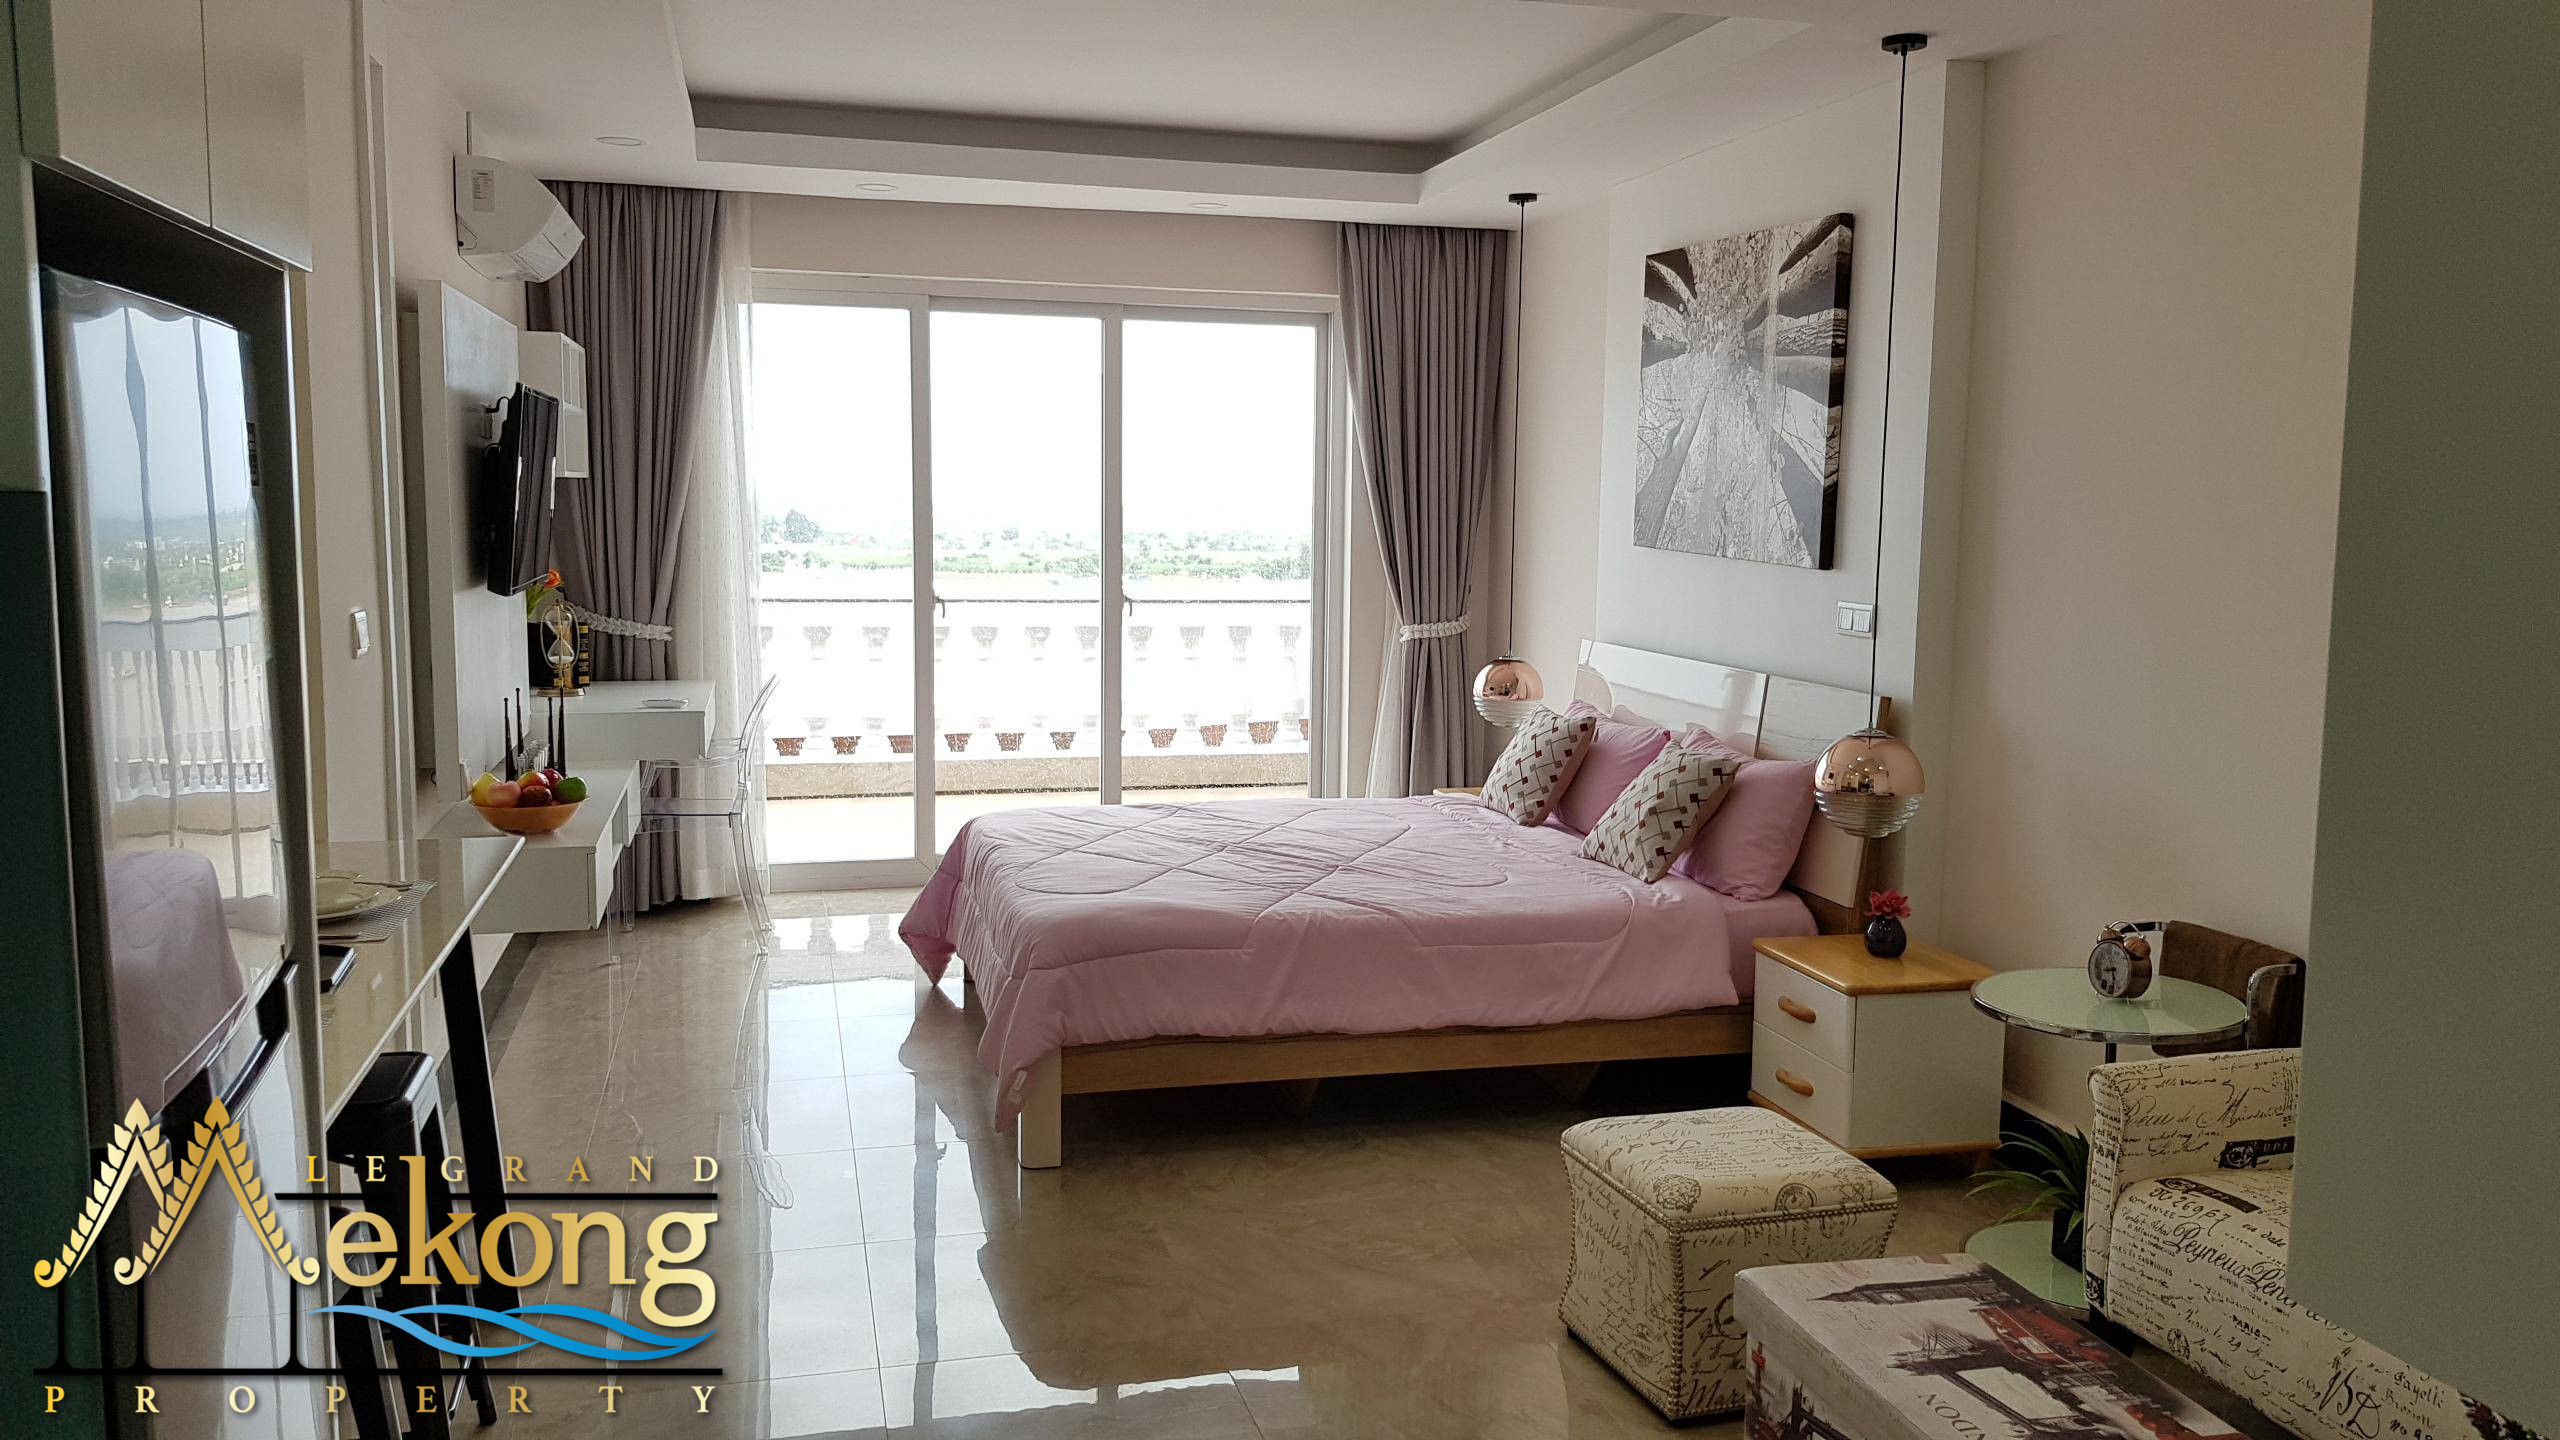 Beautiful studio with a stunning view on the Mekong for rent LGM294